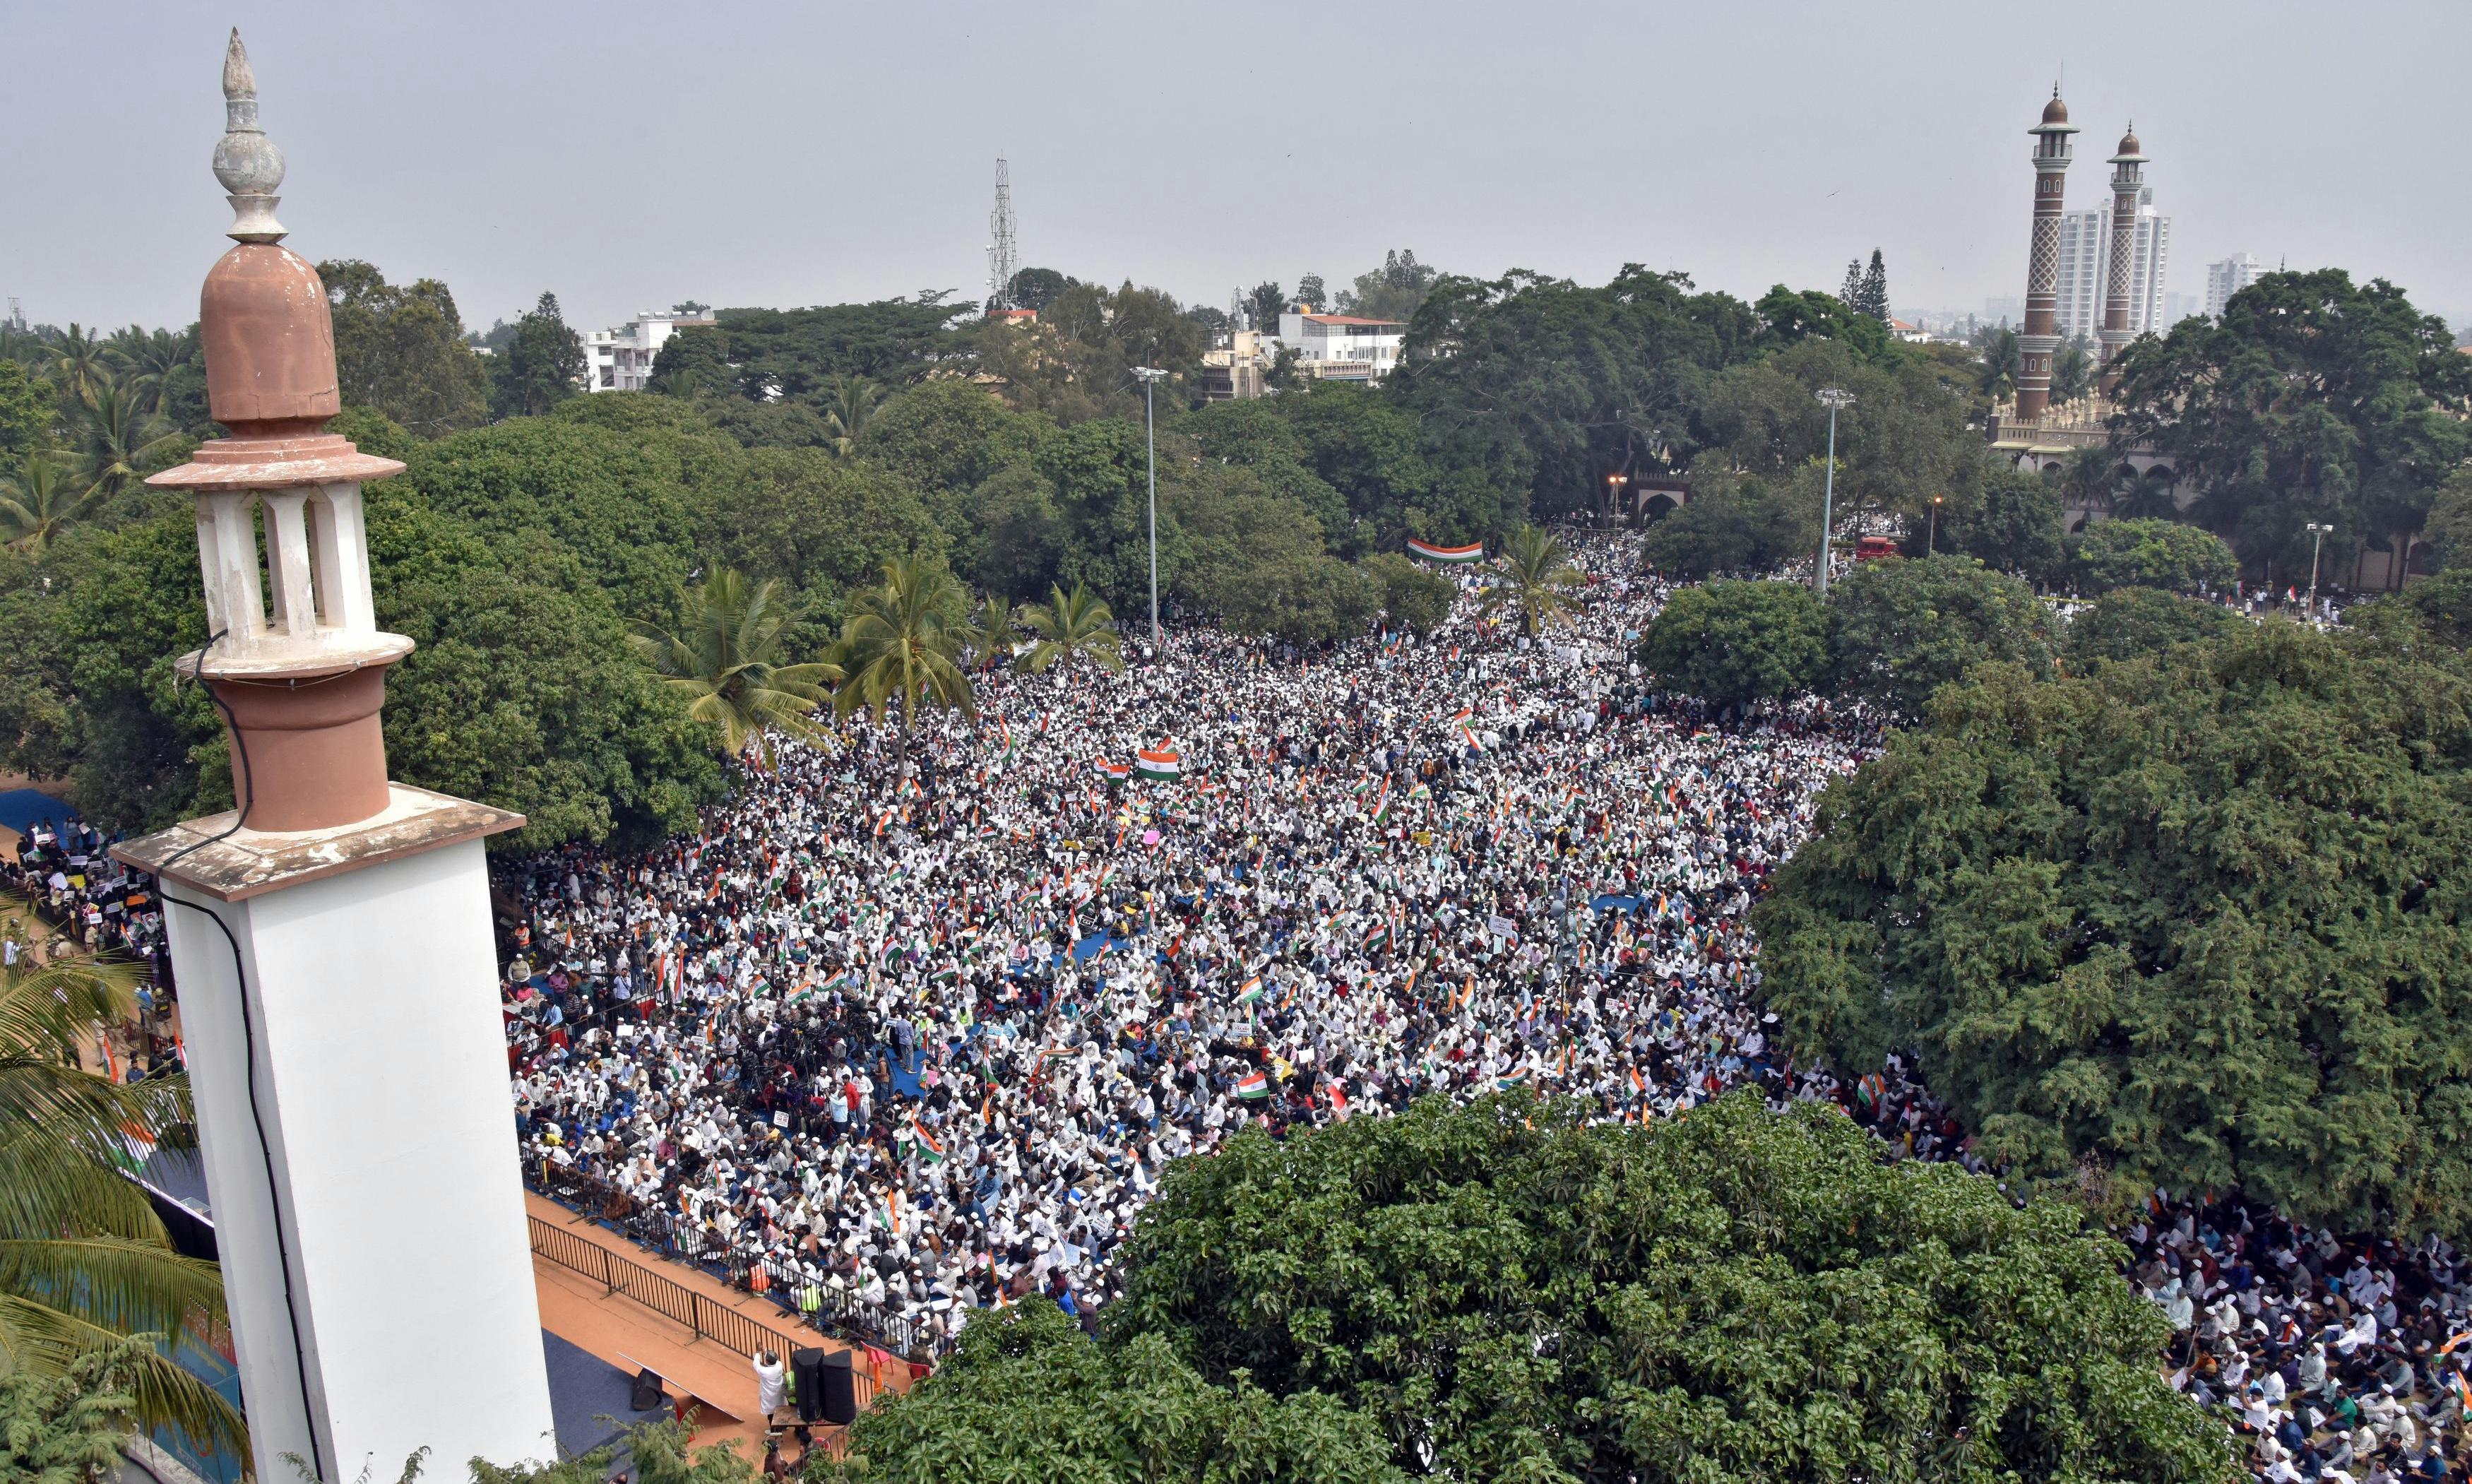 My family are among those protesting. It shows how much Indians value secularism